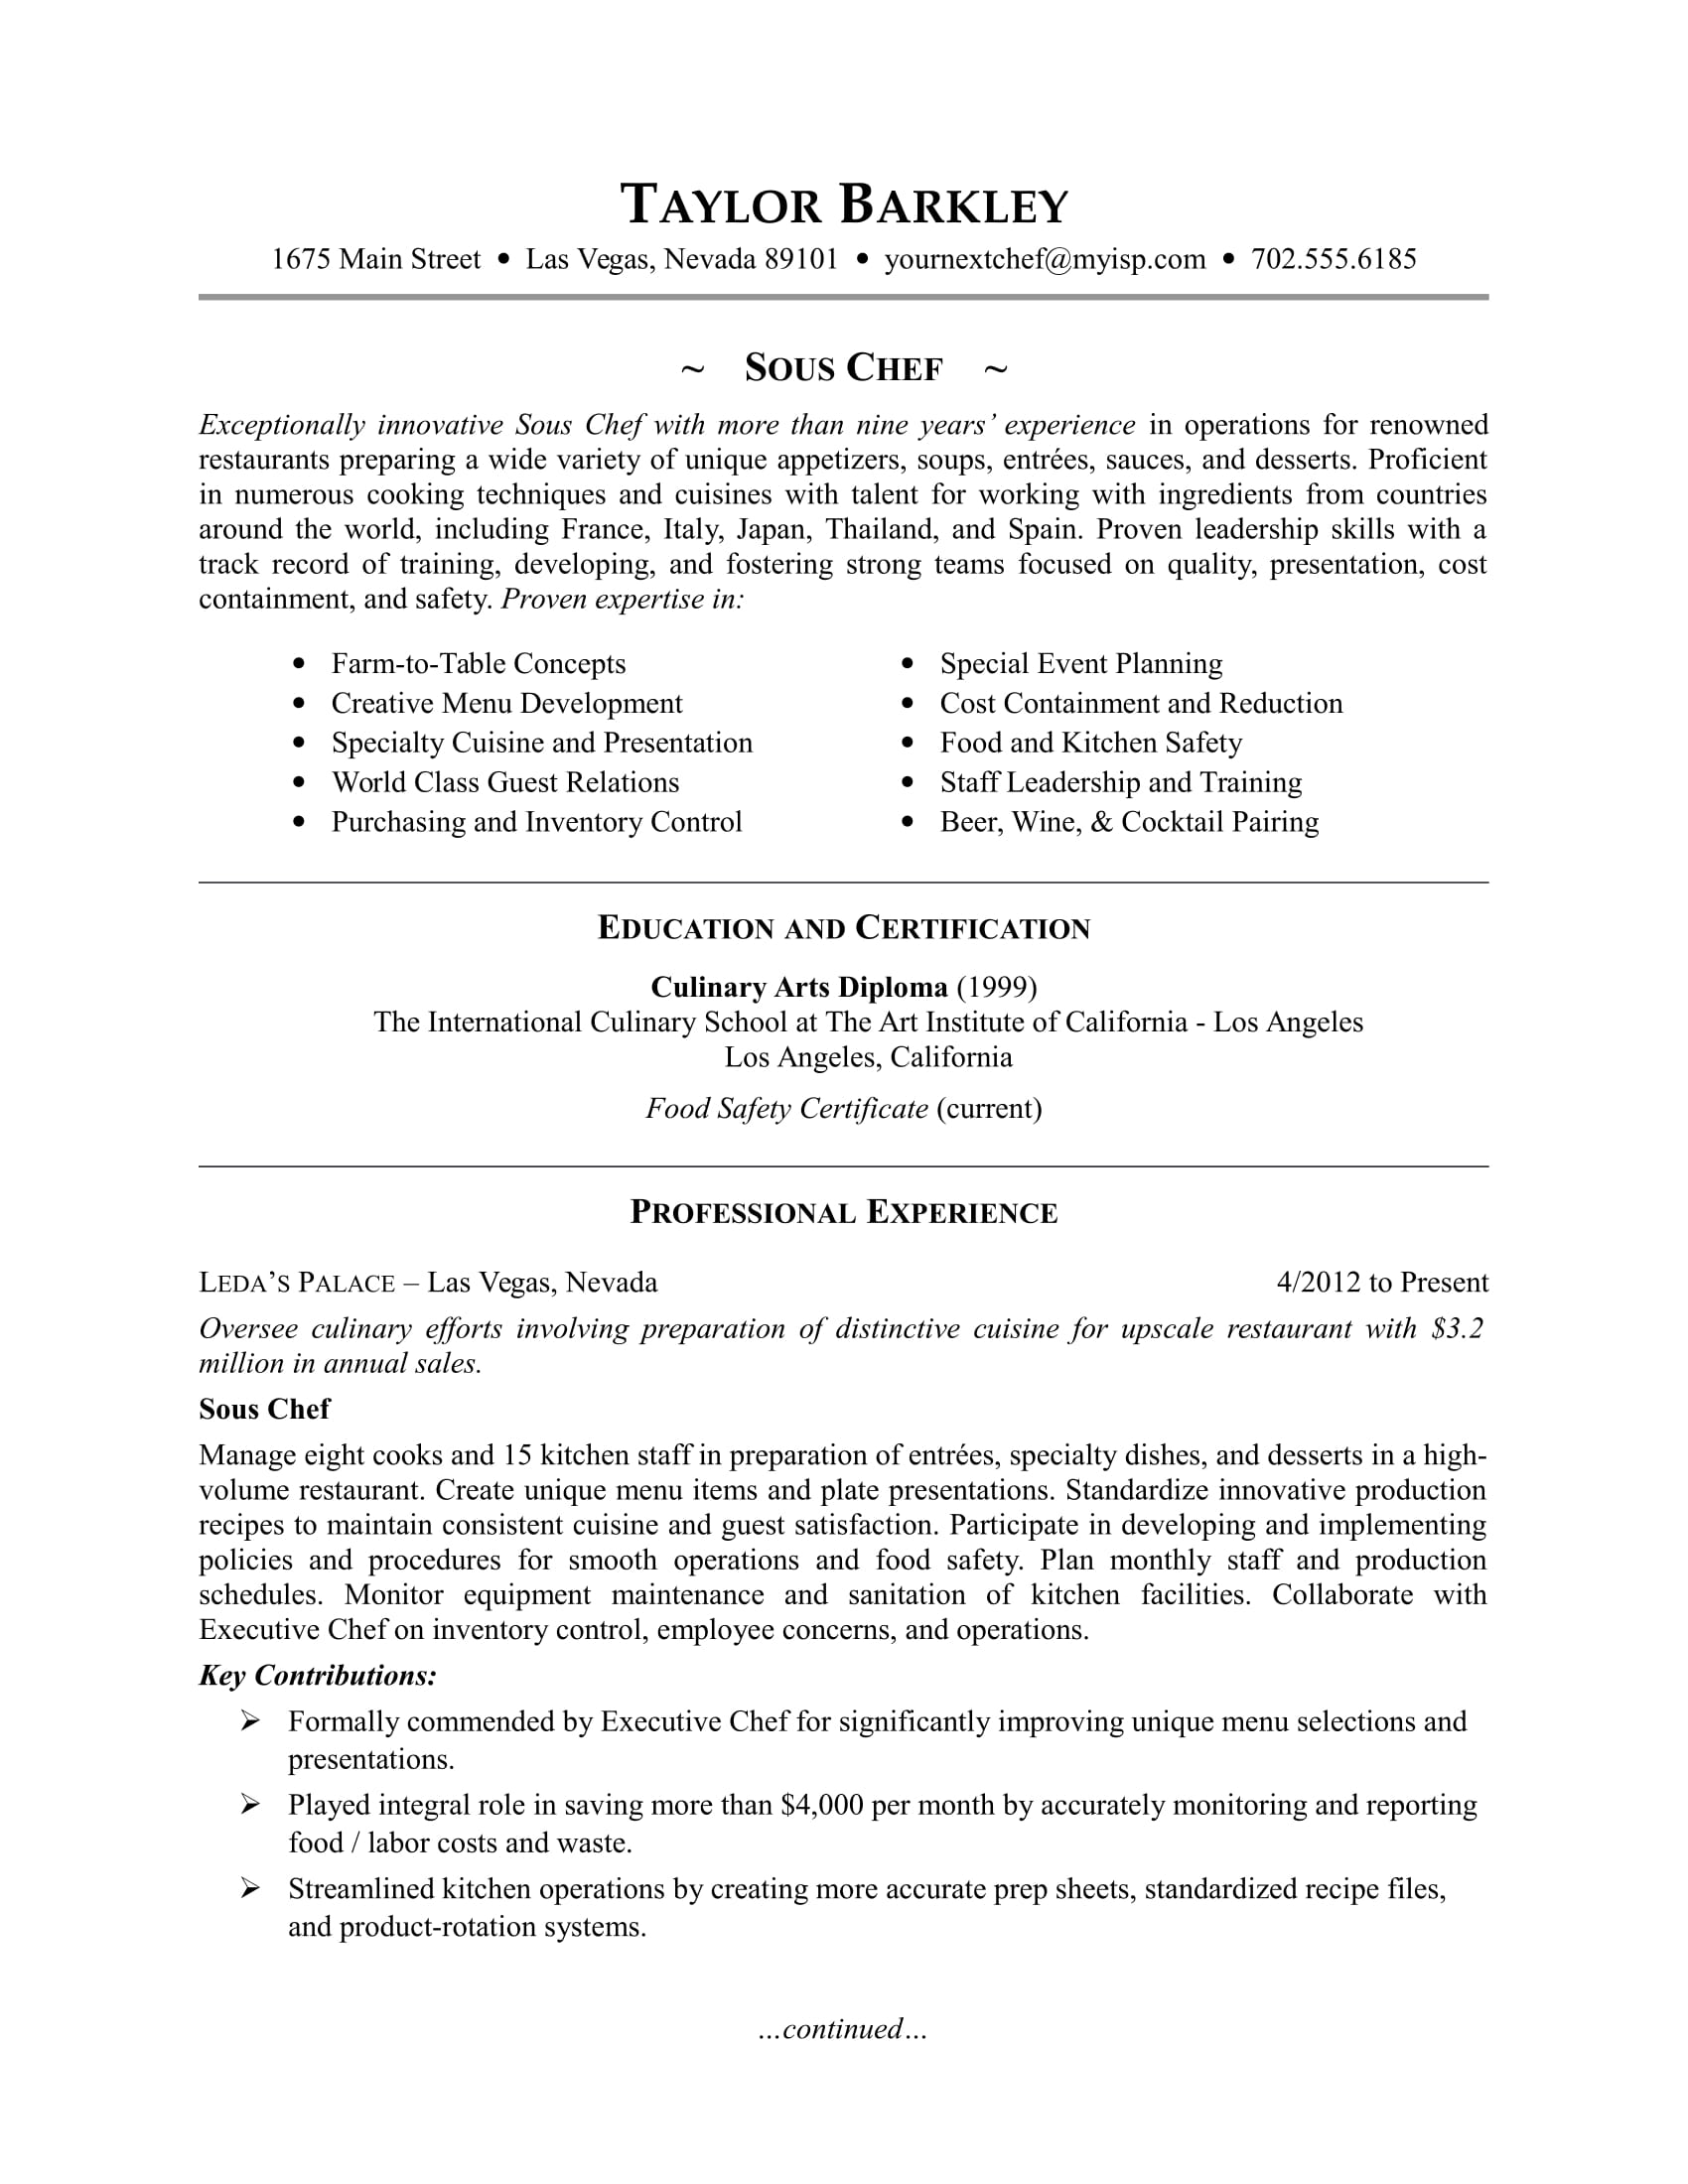 sample resume for a sous chef - Sous Chef Resume